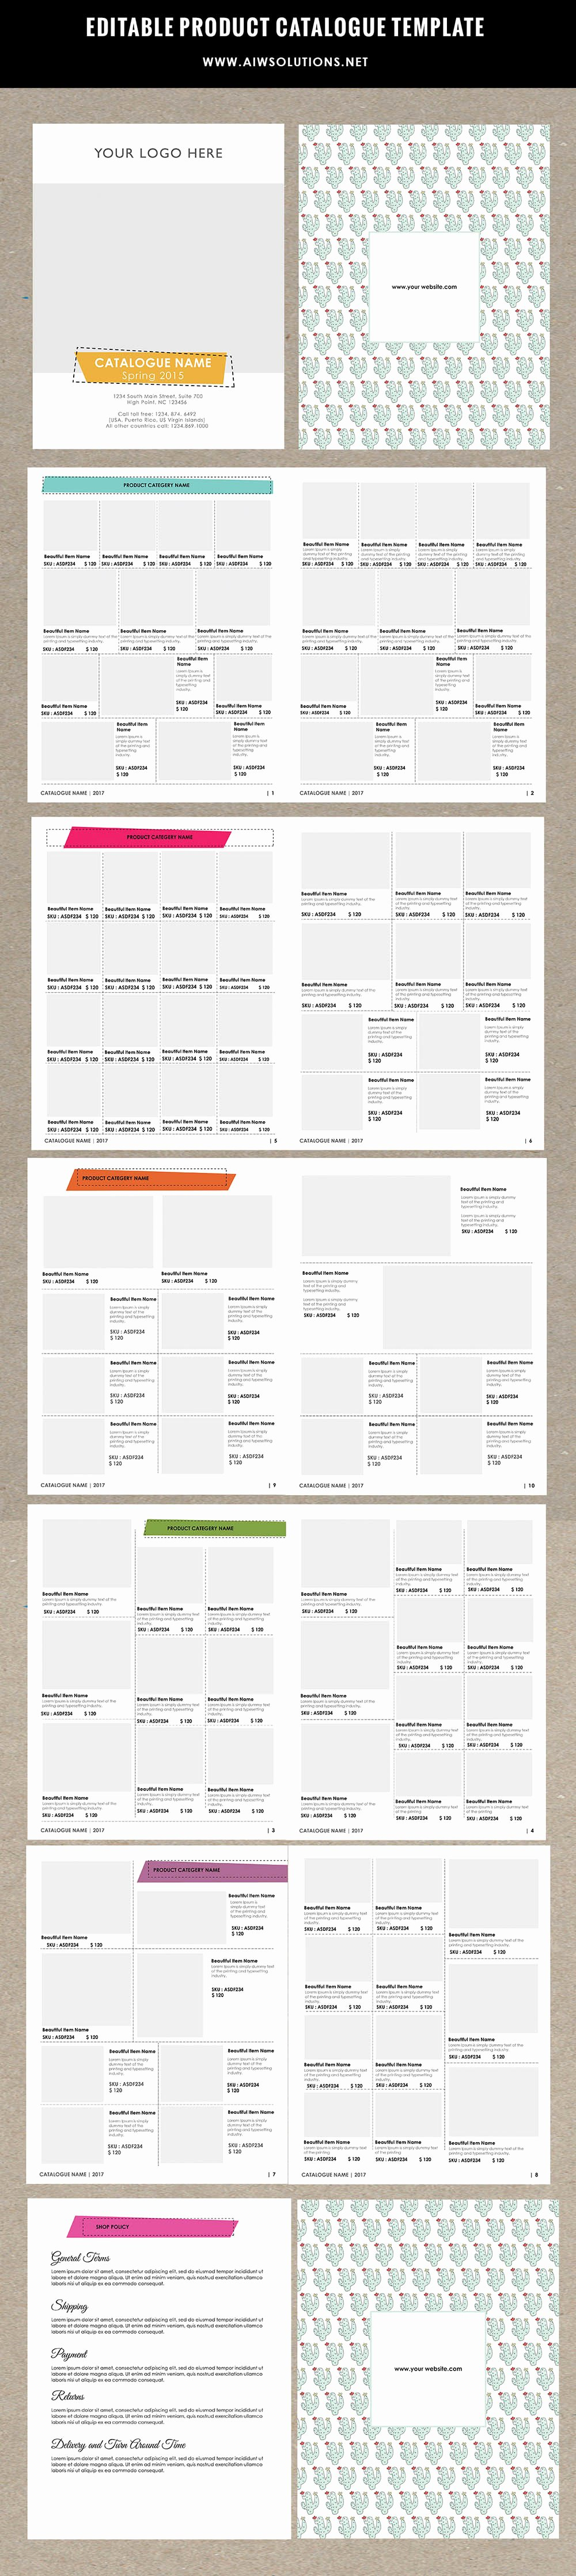 Product Catalogue Template Free Unique Product Catalog Template for Hat Catalog Shoe Catalog